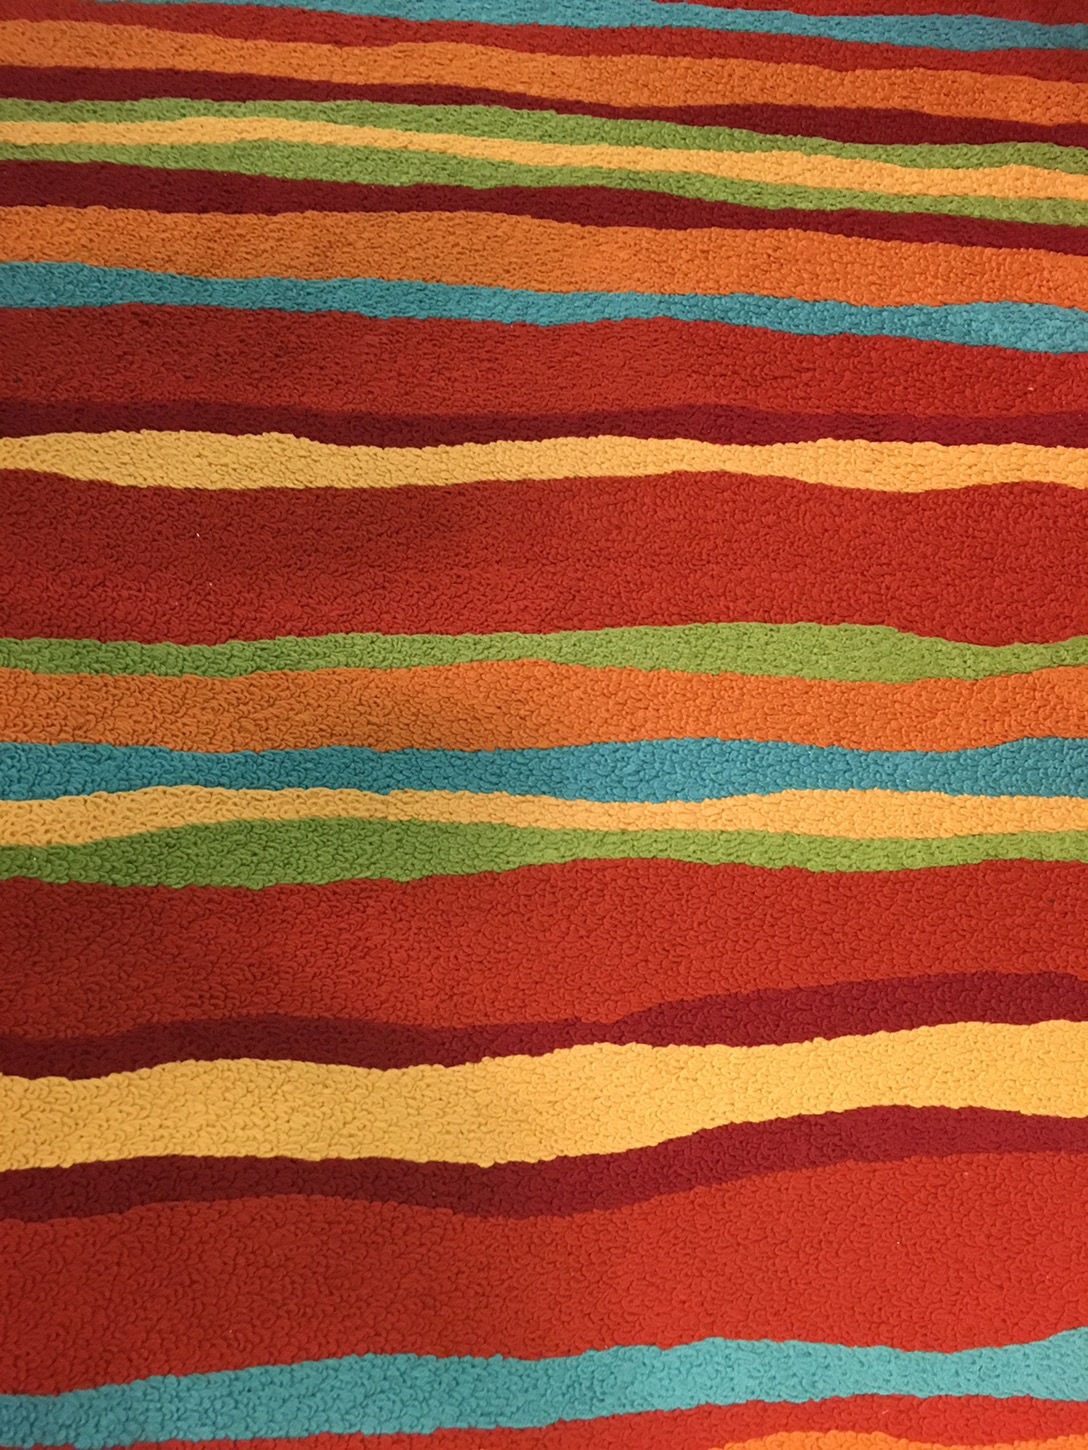 Jellybean Authentic Outdoor Rugs At Americasmart Rug